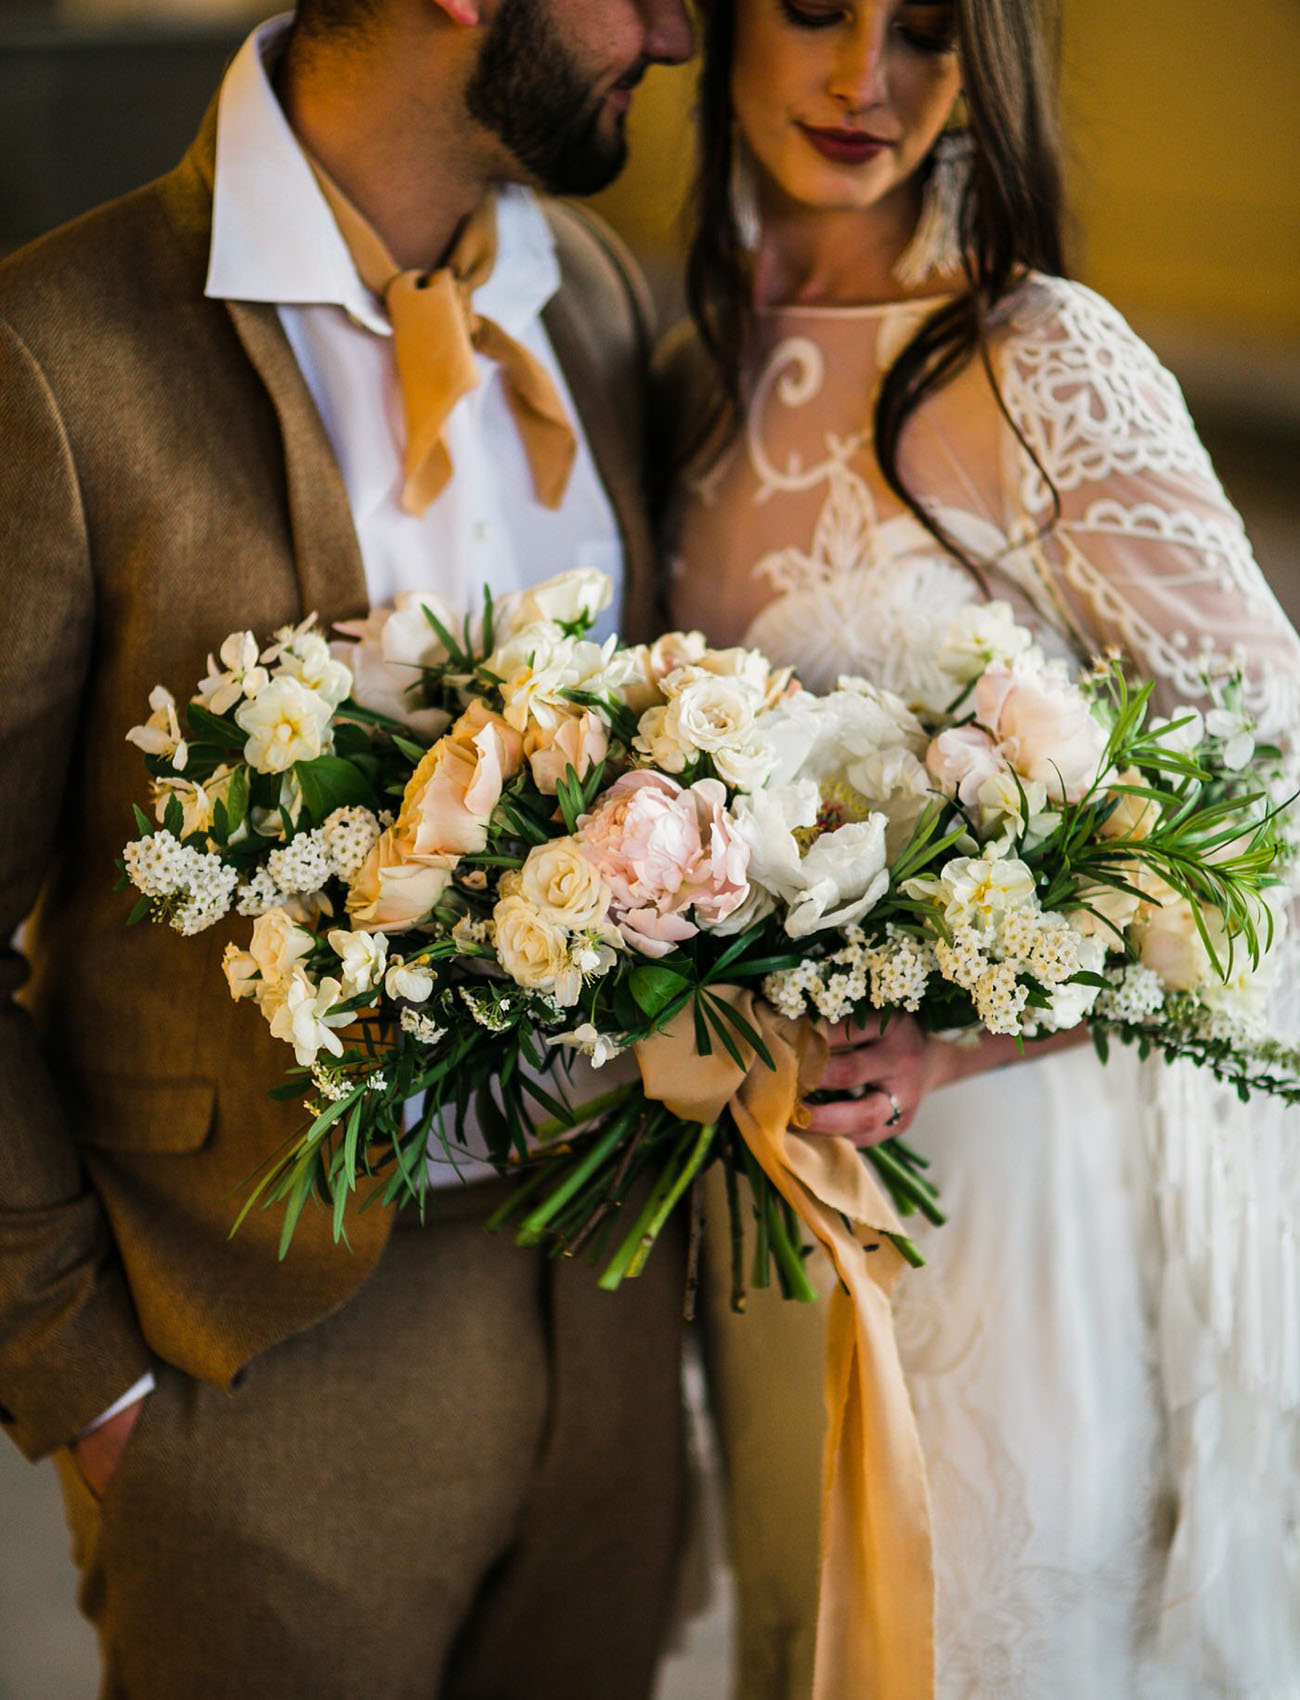 The wedding bouquet was lush and neutral, with blush and white blooms